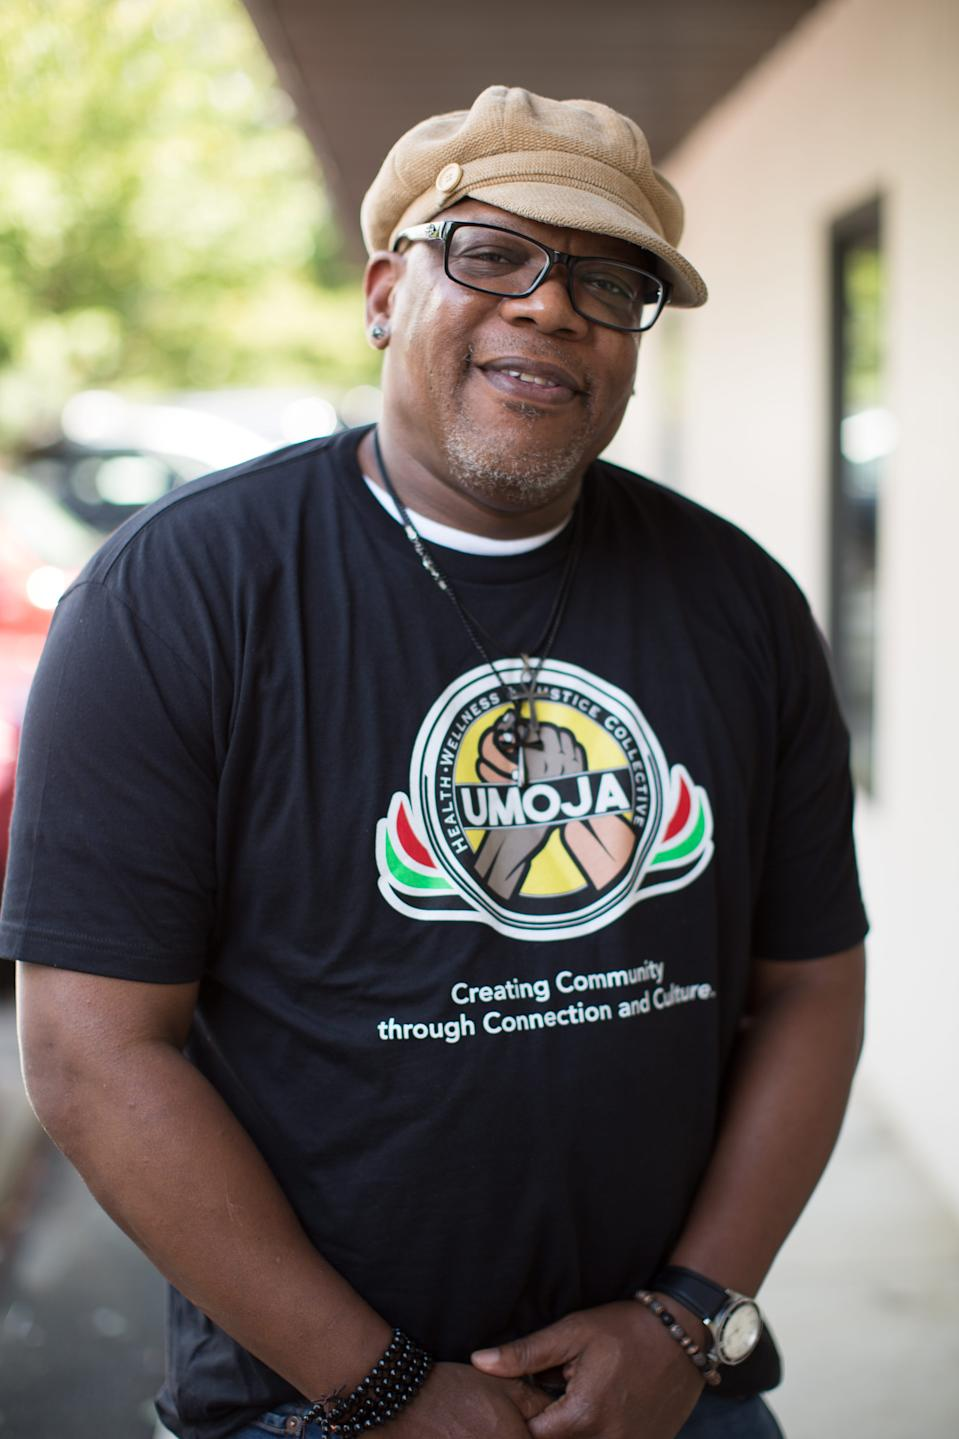 Michael Hayes posed for a portrait at Umoja Health, Wellness and Justice Collective in Asheville, NC on June 4, 2020.